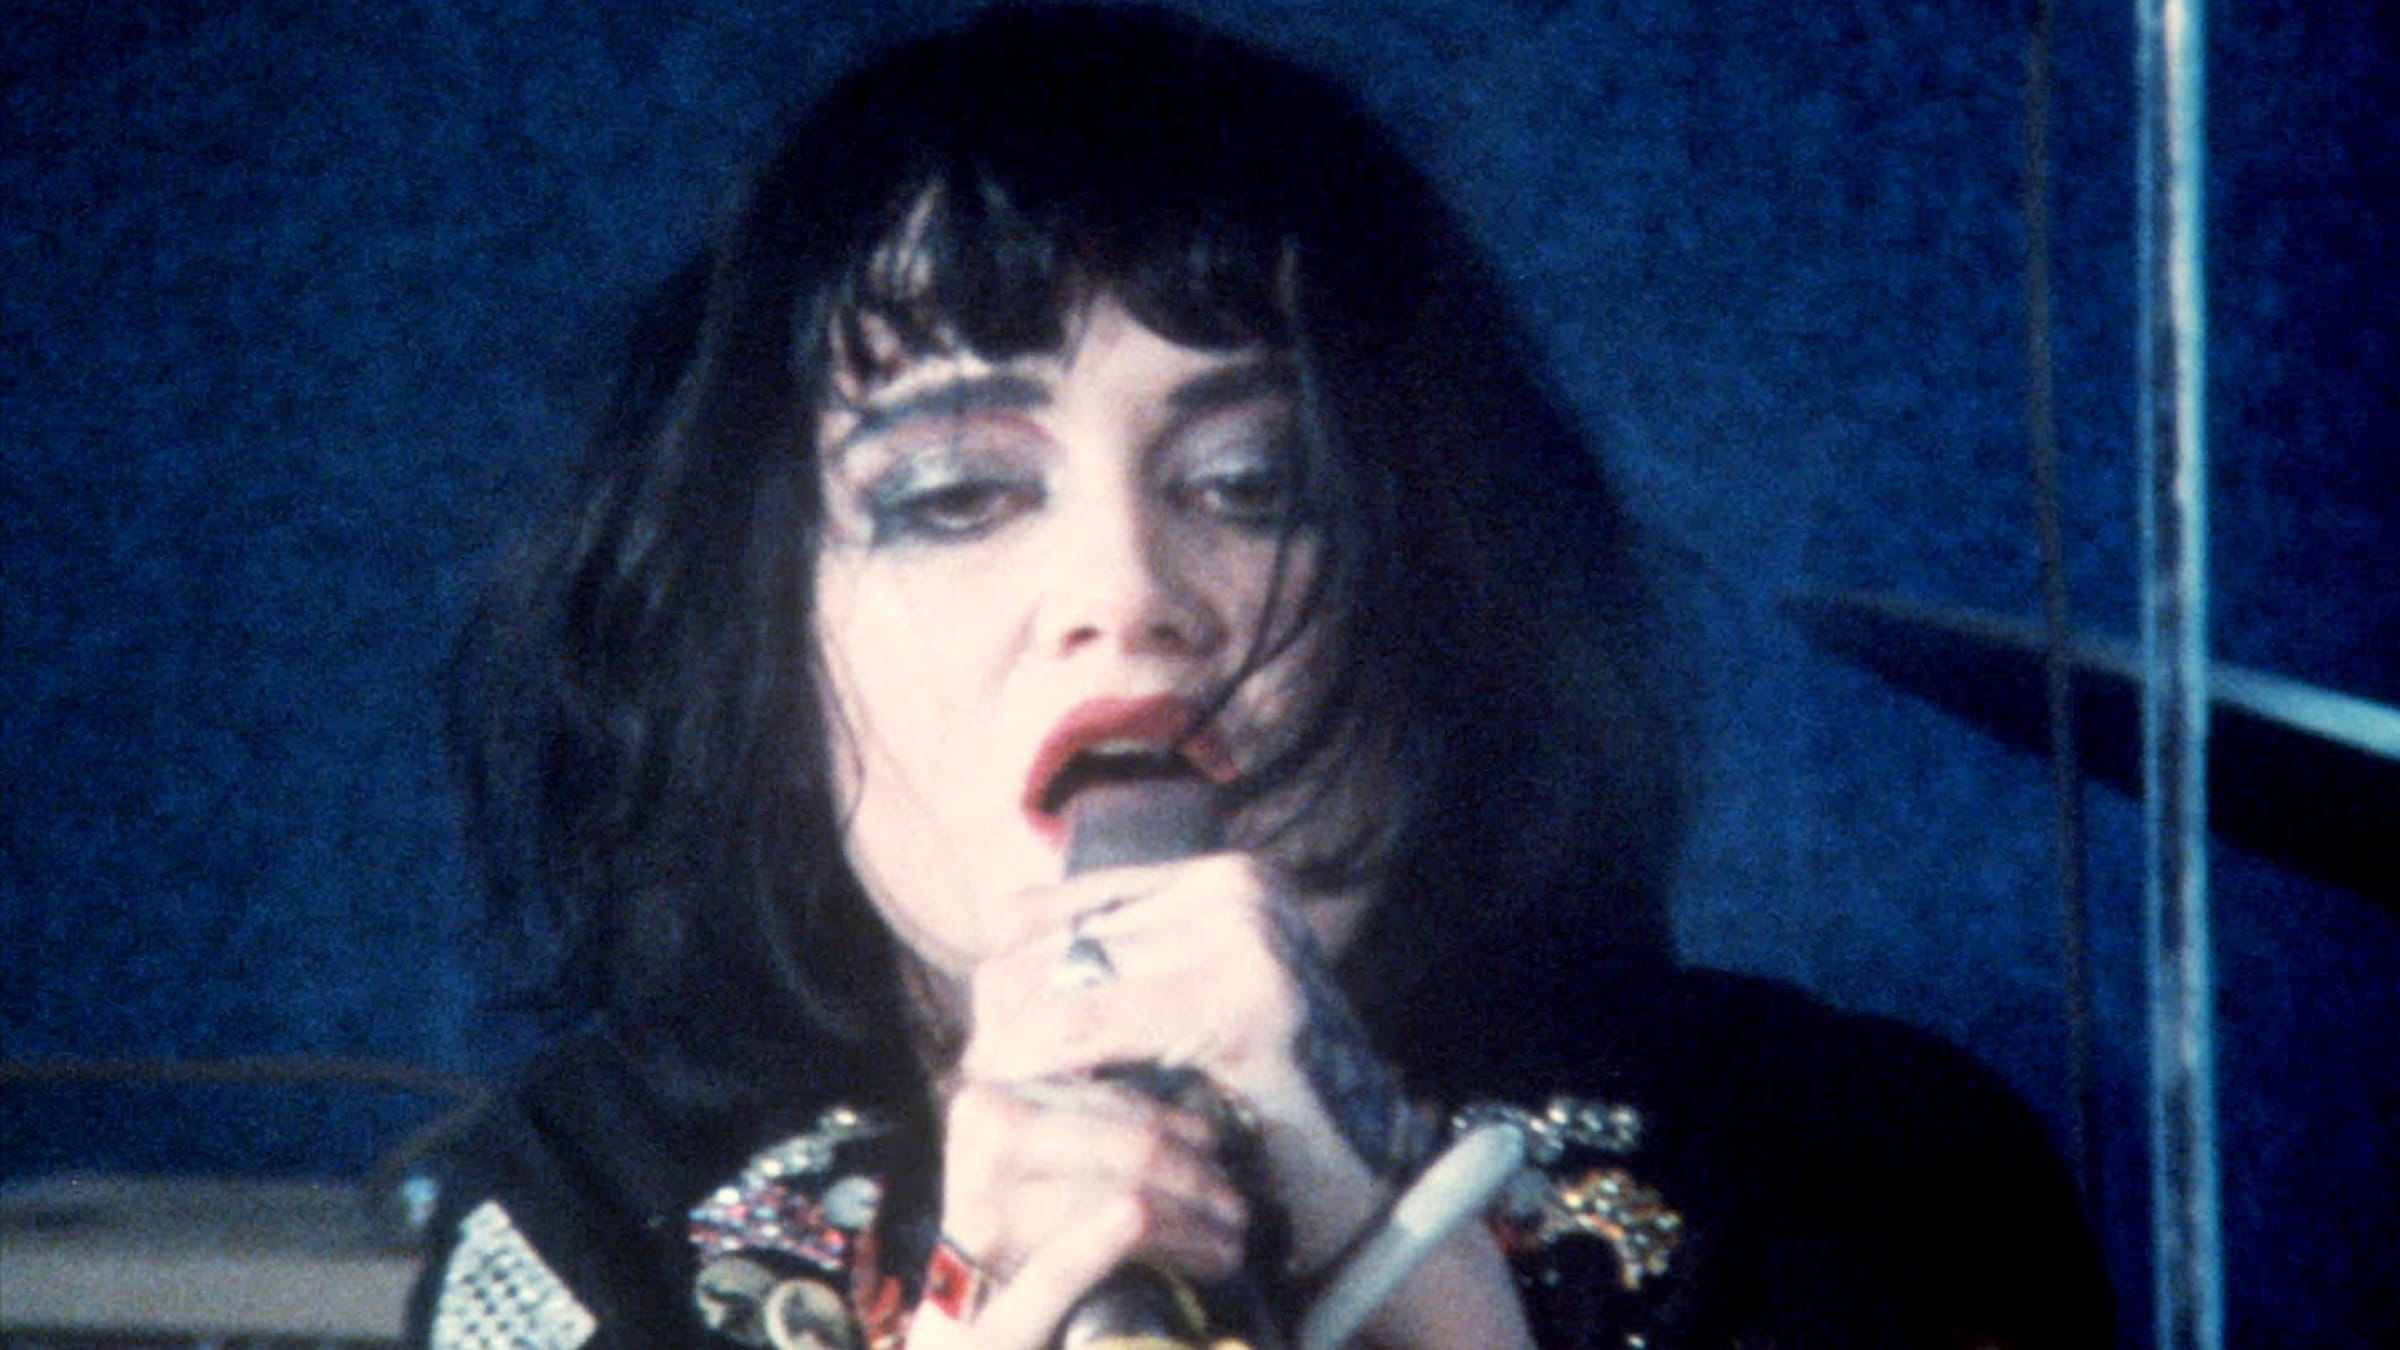 The Truth About Punk According to Penelope Spheeris